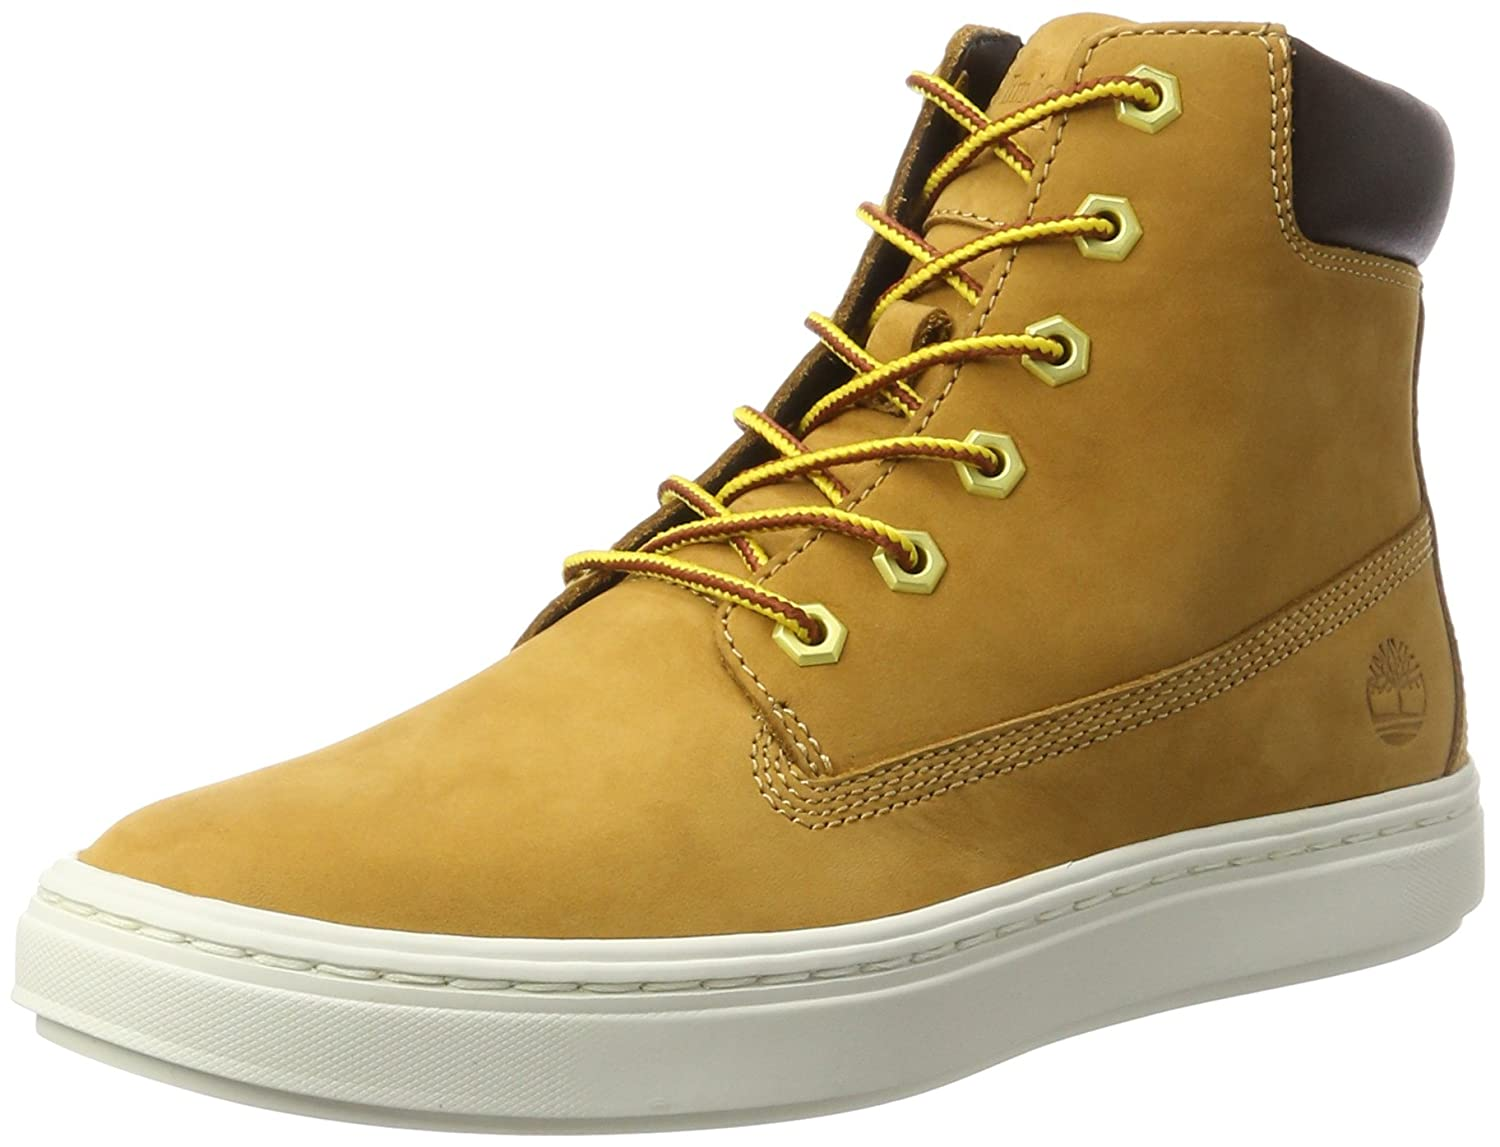 Timberland Londyn, Bottes Femme Bottes Marron Timberland Londyn, (Wheat) 9e75c9c - deadsea.space